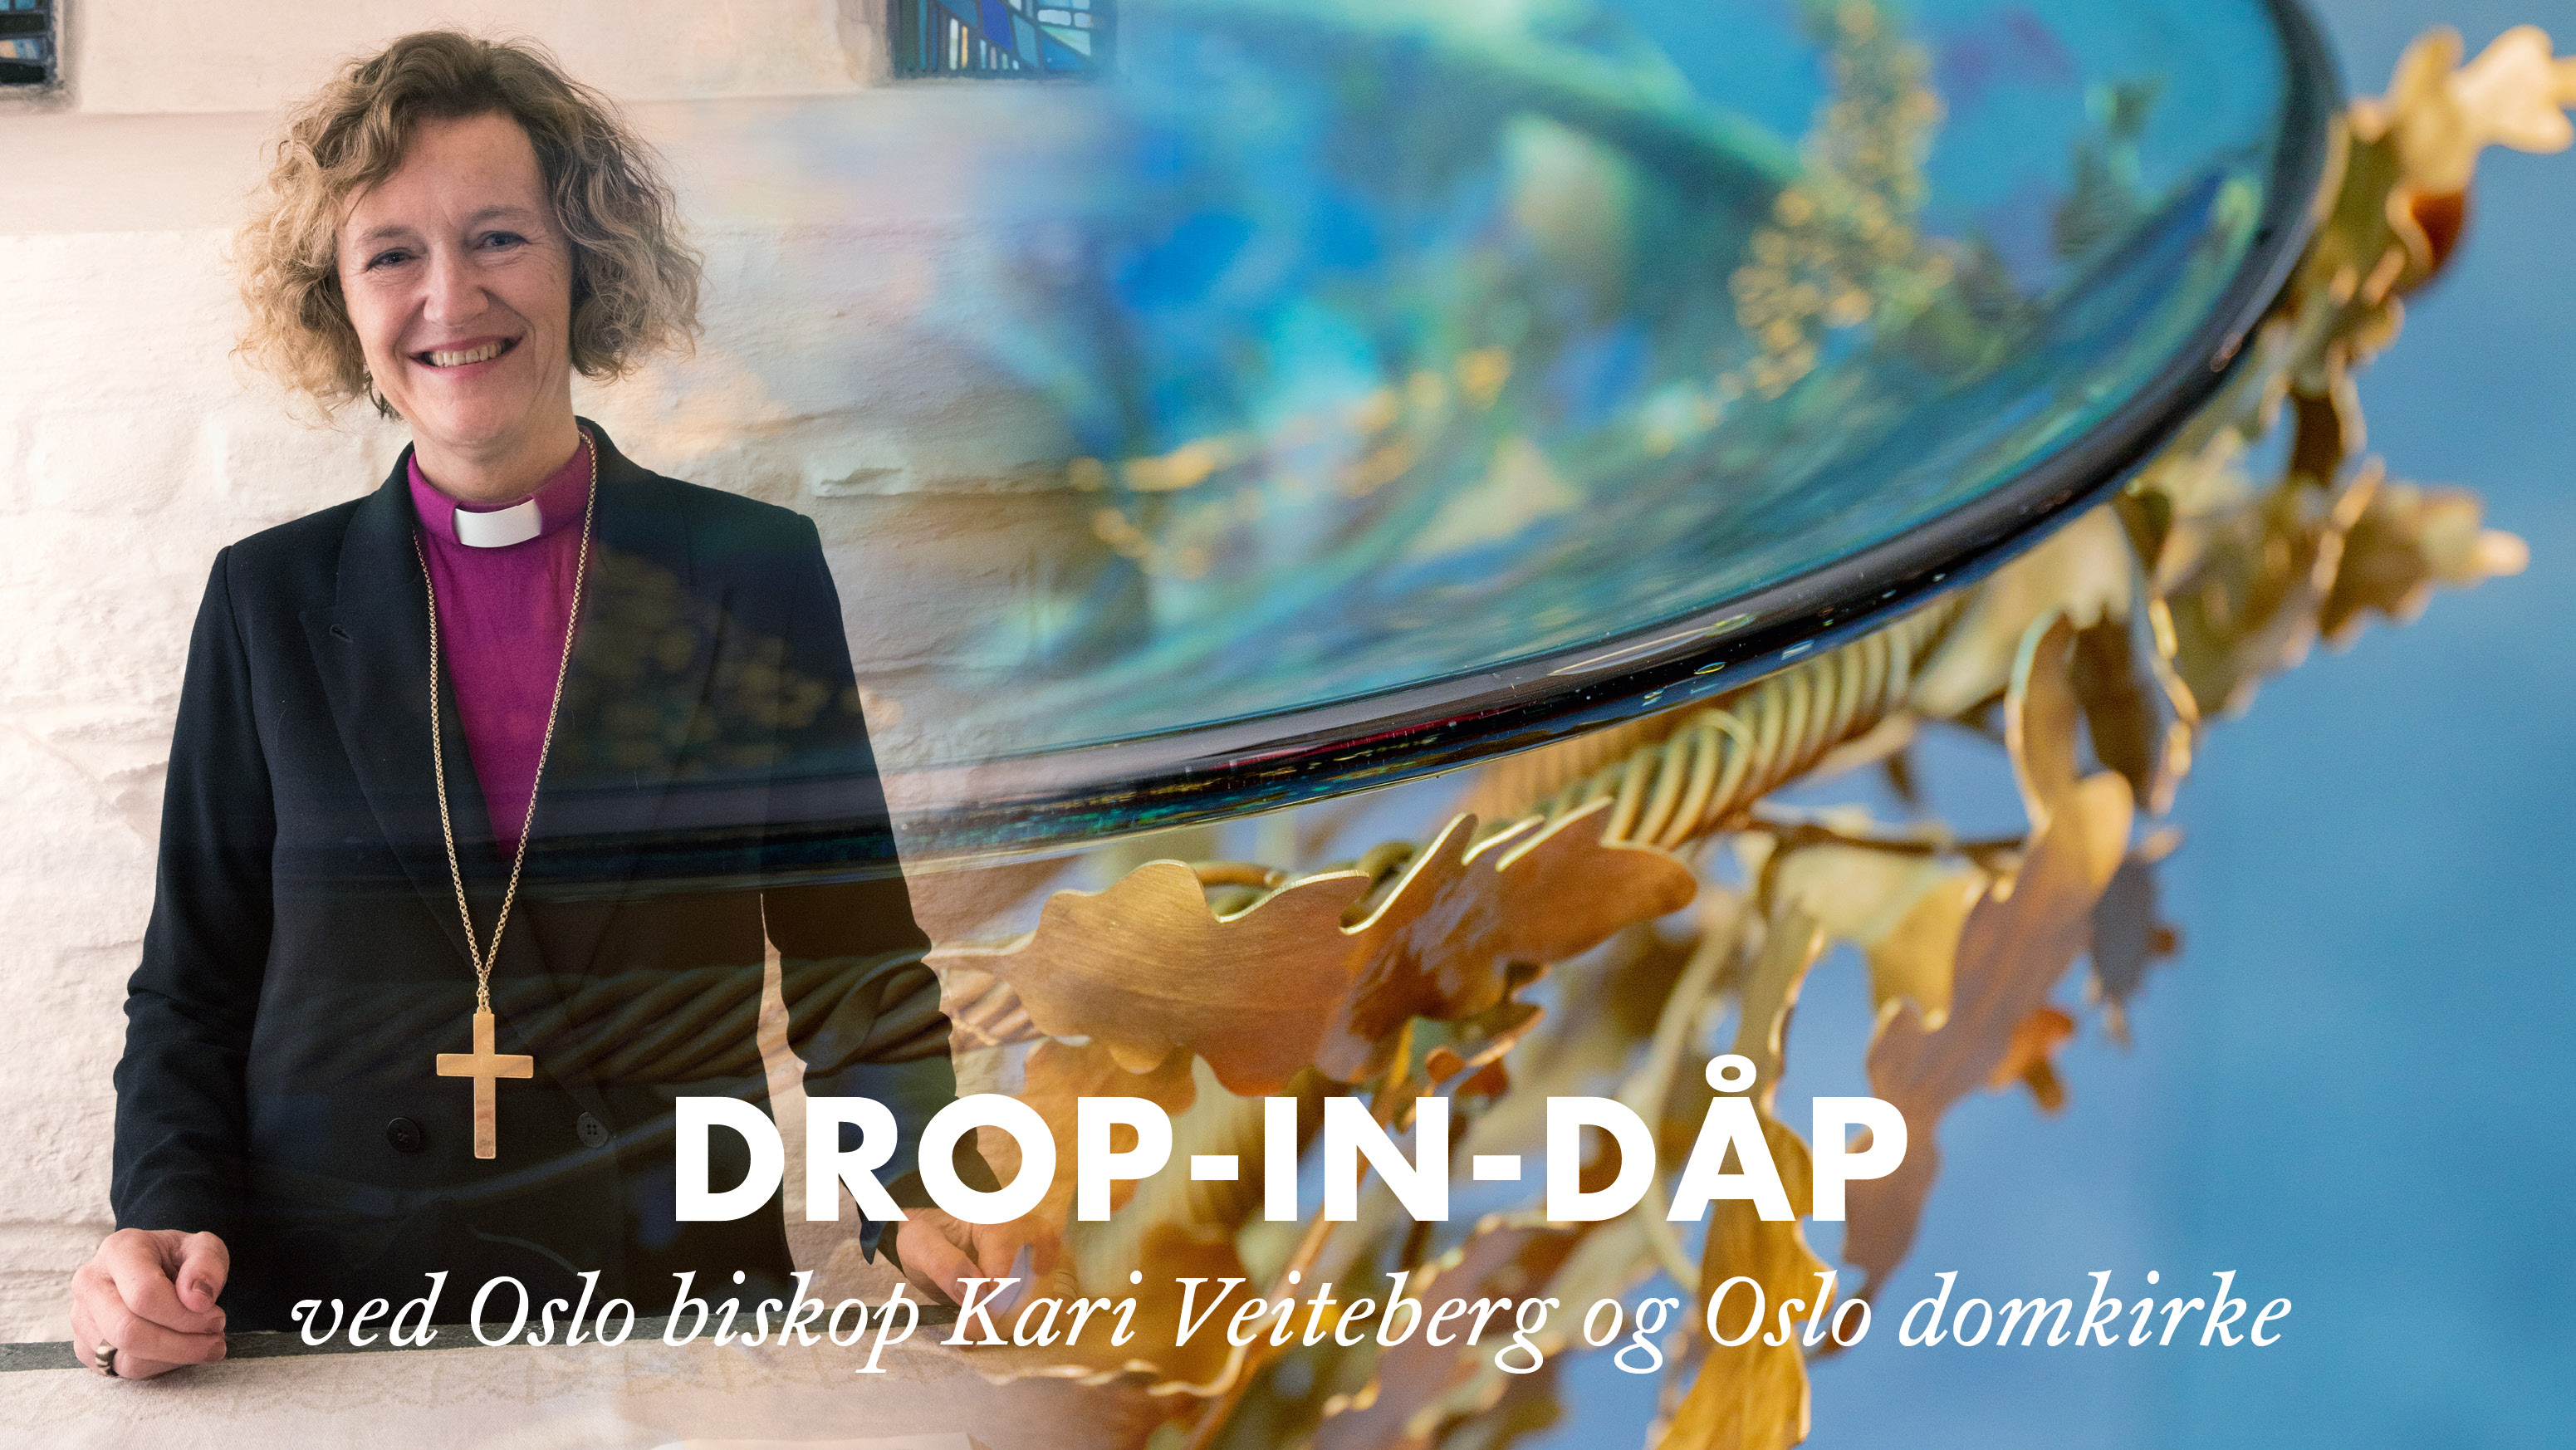 2019-04-20_drop-in-dåp.jpg